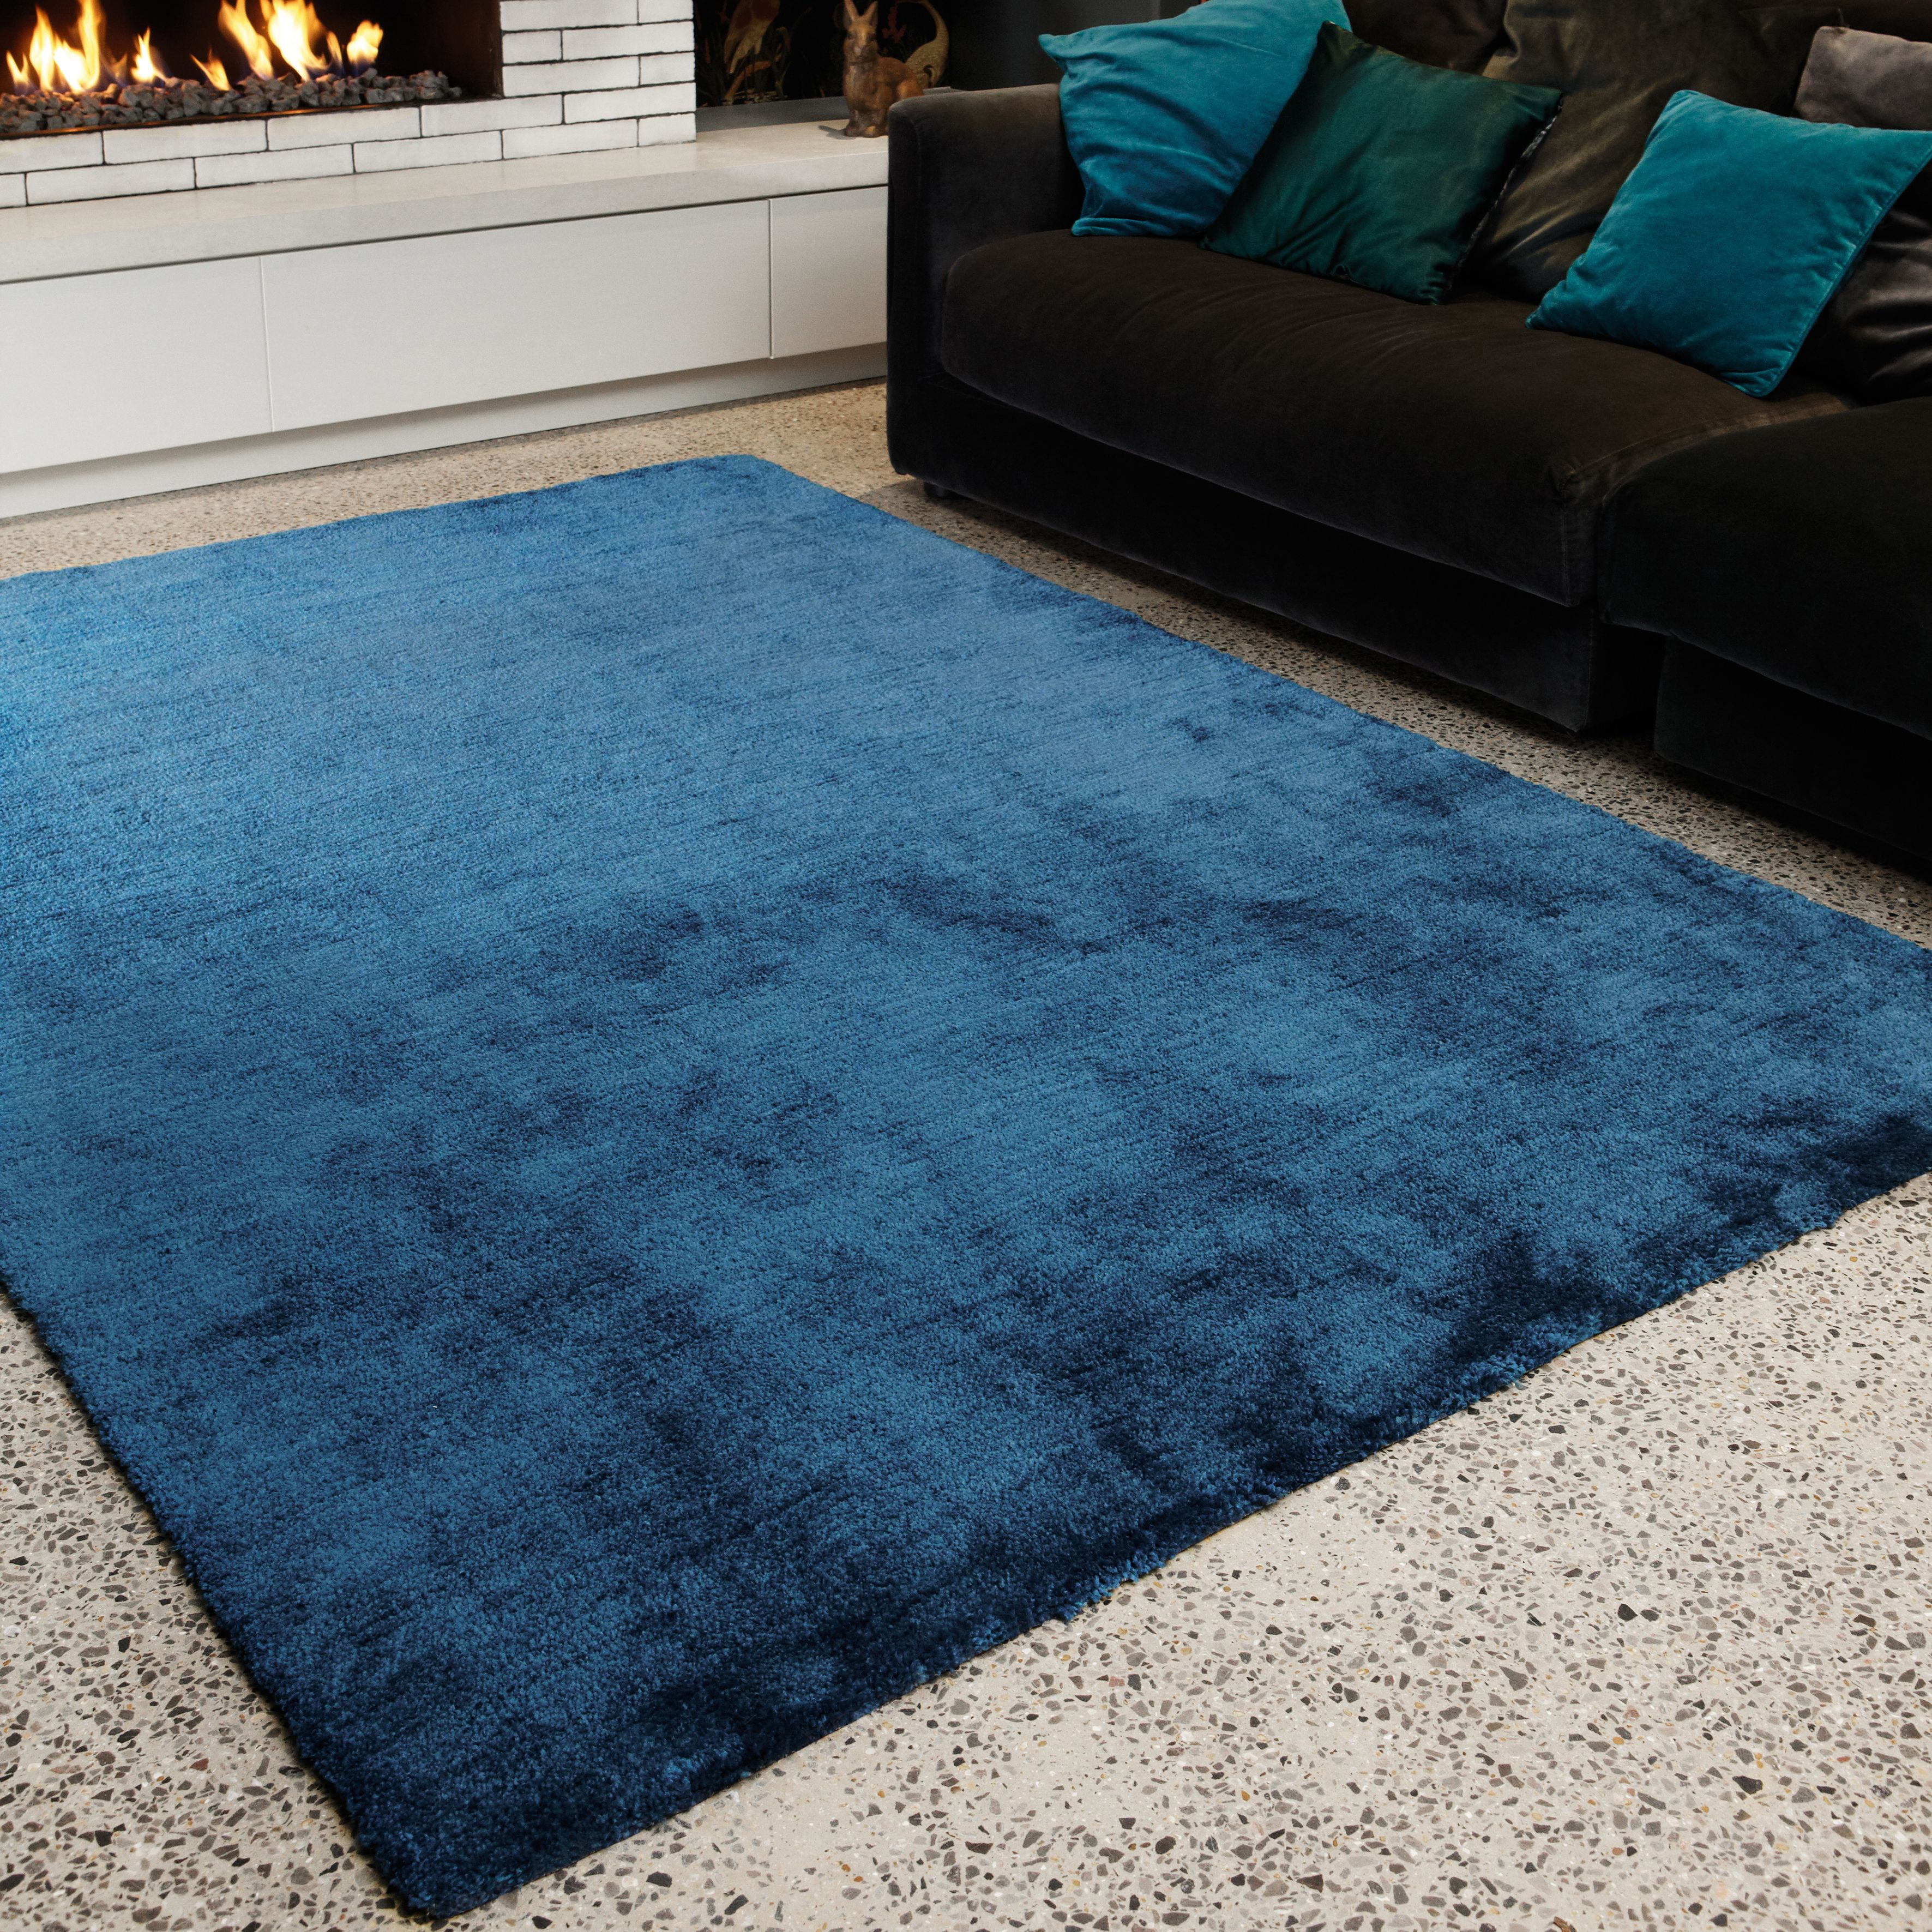 Tula Rugs In Dark Teal Have A Dense Soft Pile And Sophisticated Re